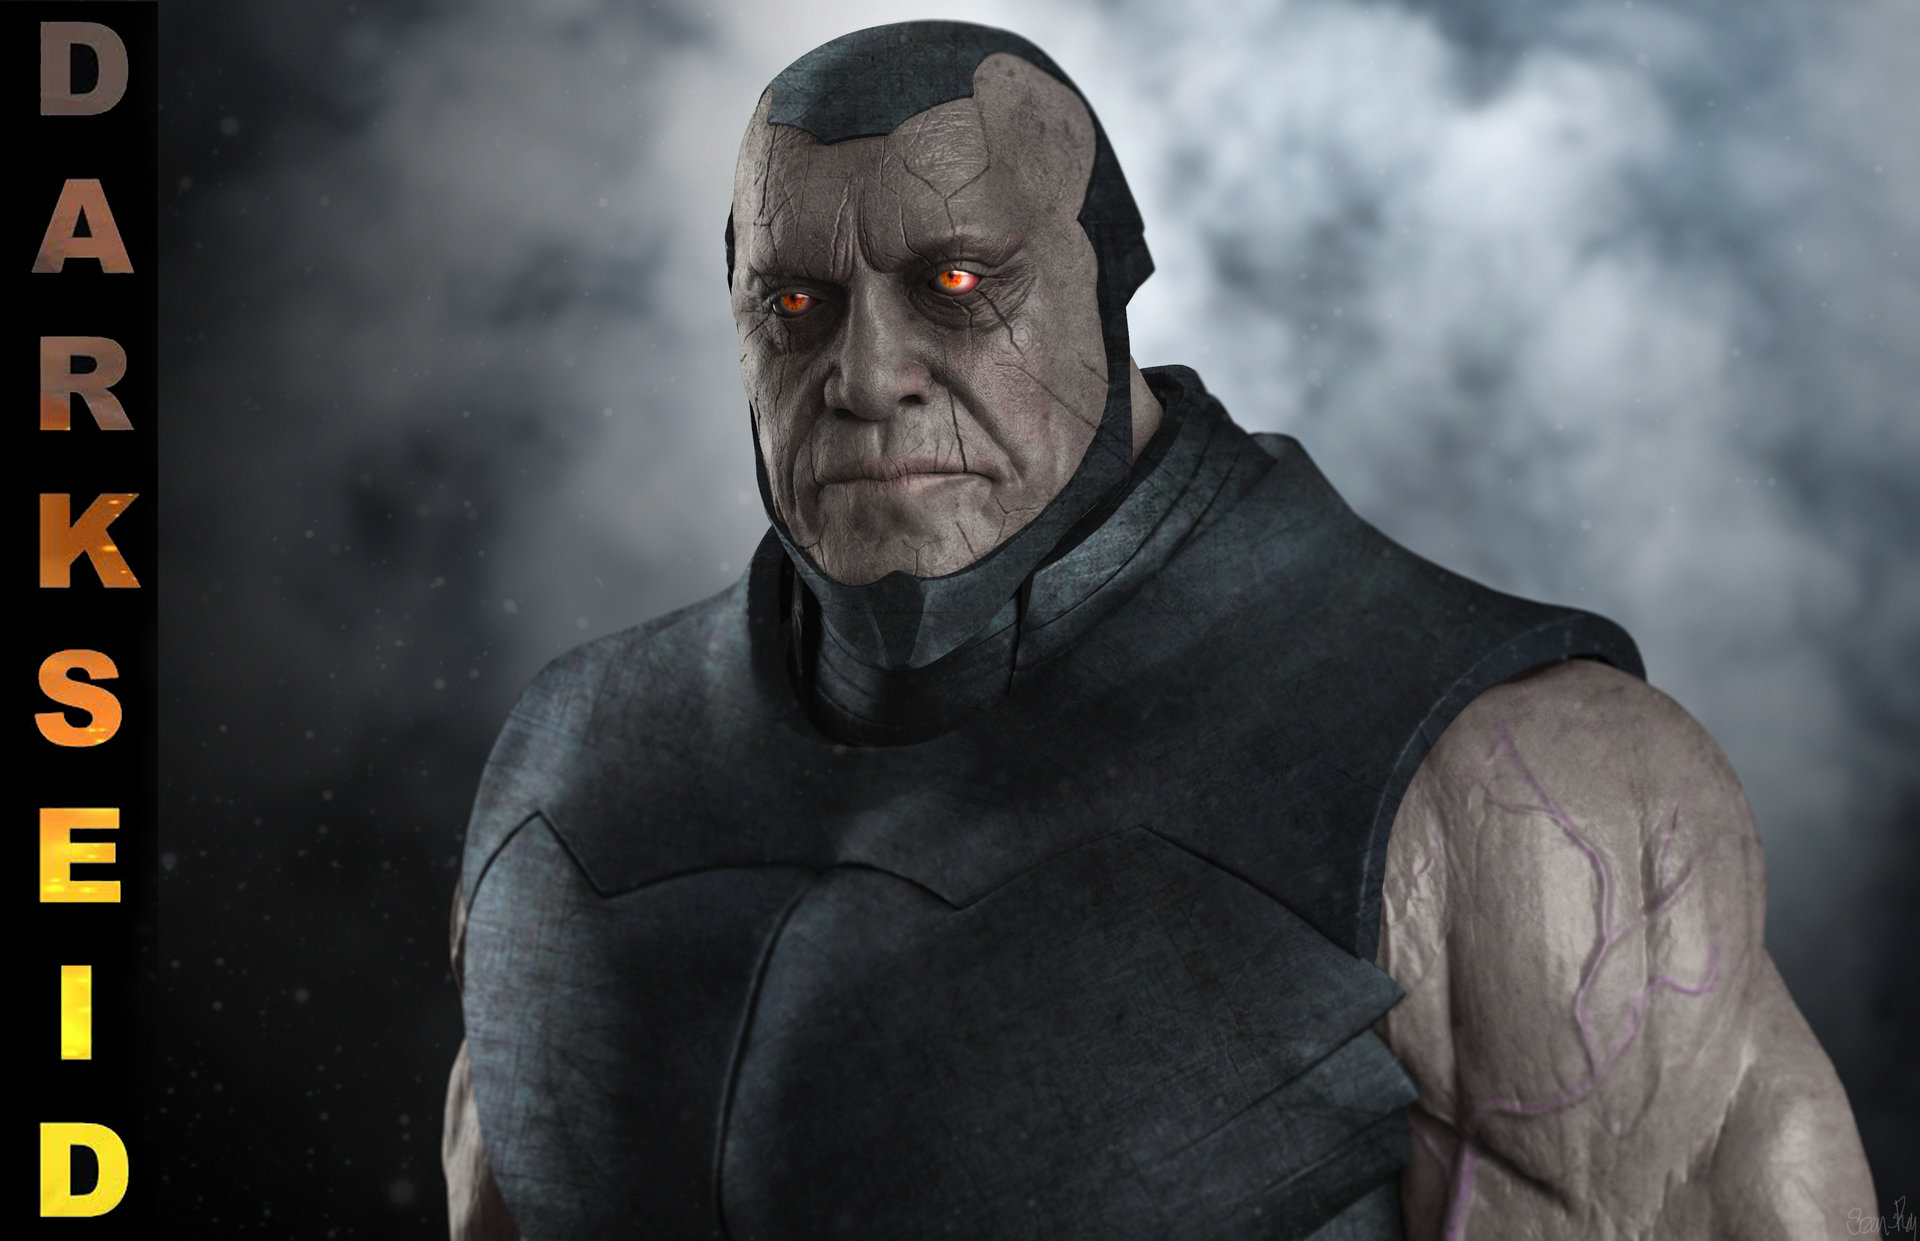 ¿Javier Bardem como Darkseid en 'Batman v Superman'?